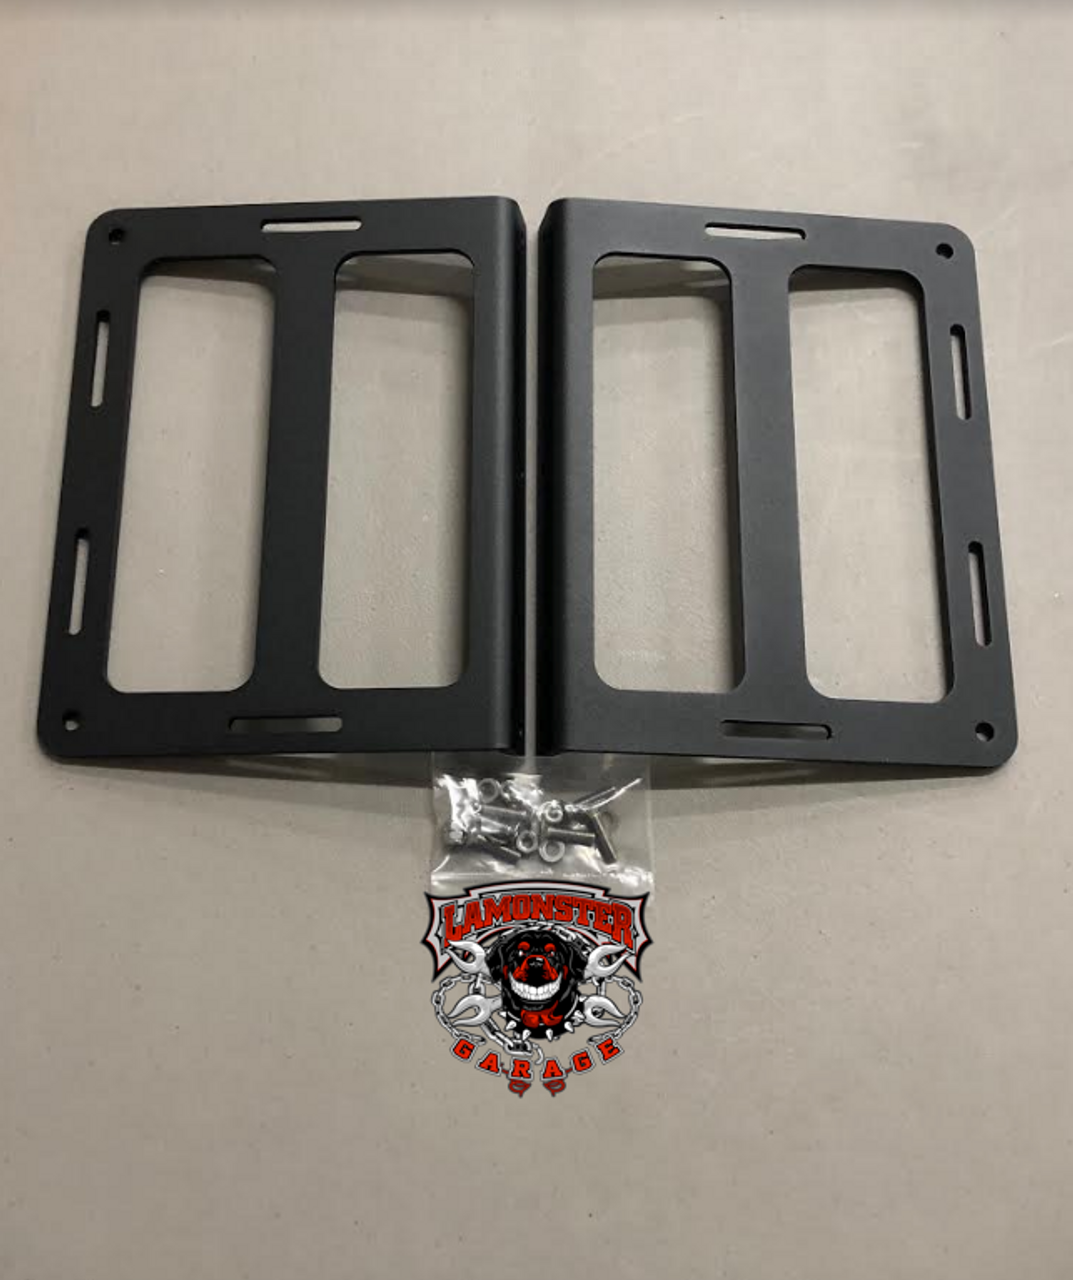 IPS Saddlebag Standoffs for the Can Am Ryker and F3 (LG-1061)